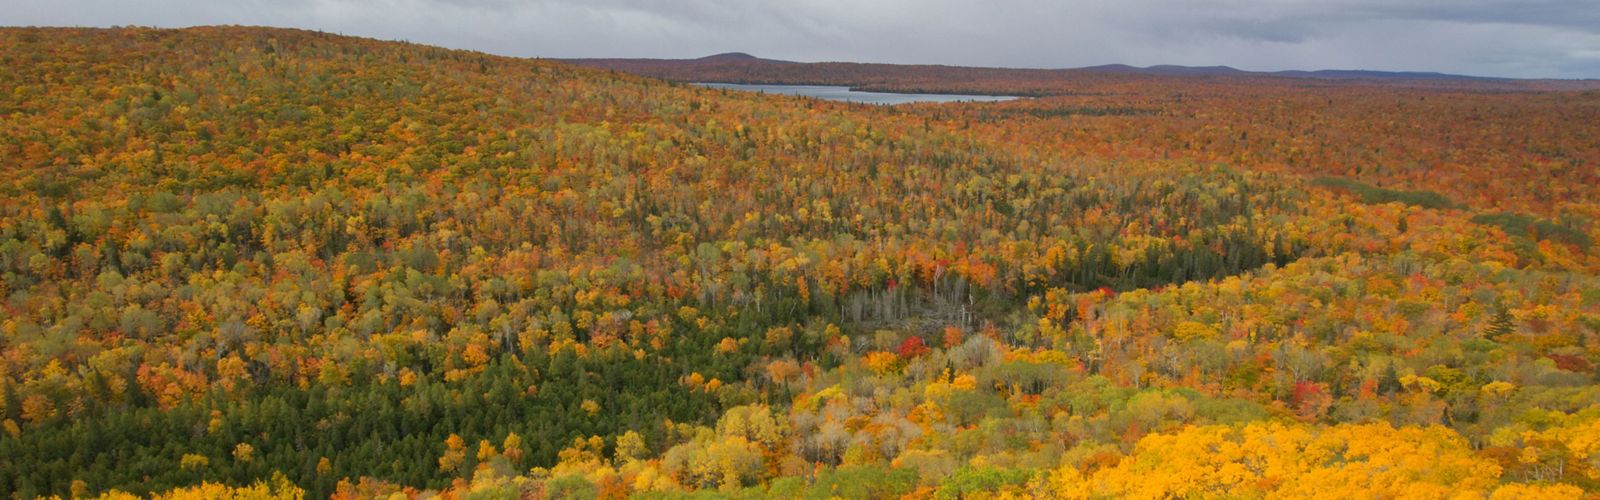 Aerial view of a large autumn forest